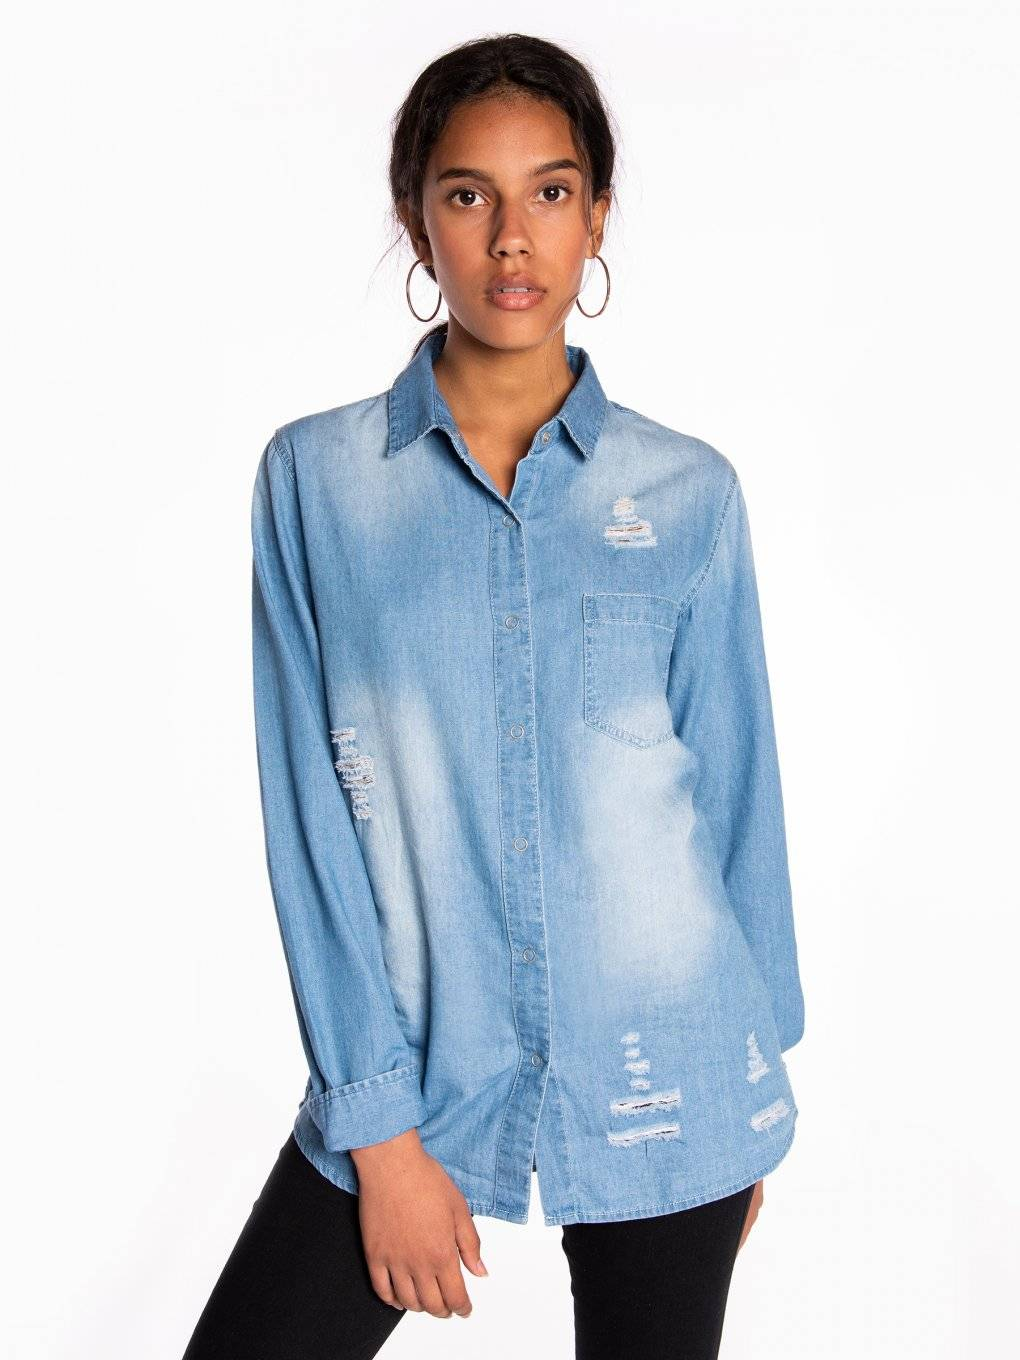 Denim shirt with damages